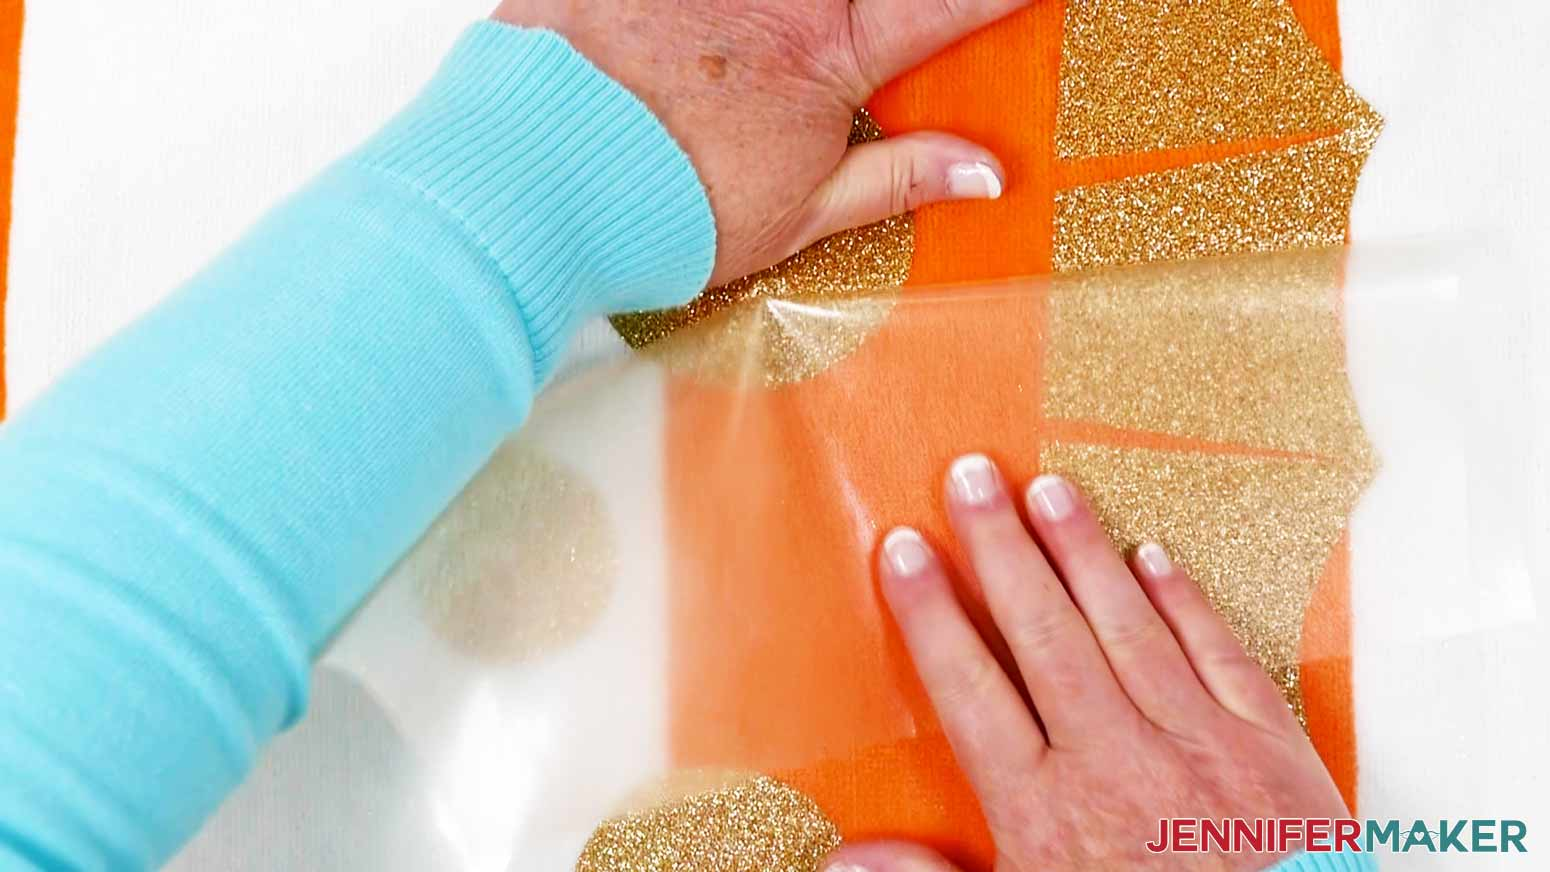 Removing the Iron-On carrier sheet of the DIY Personalized Beach Towels